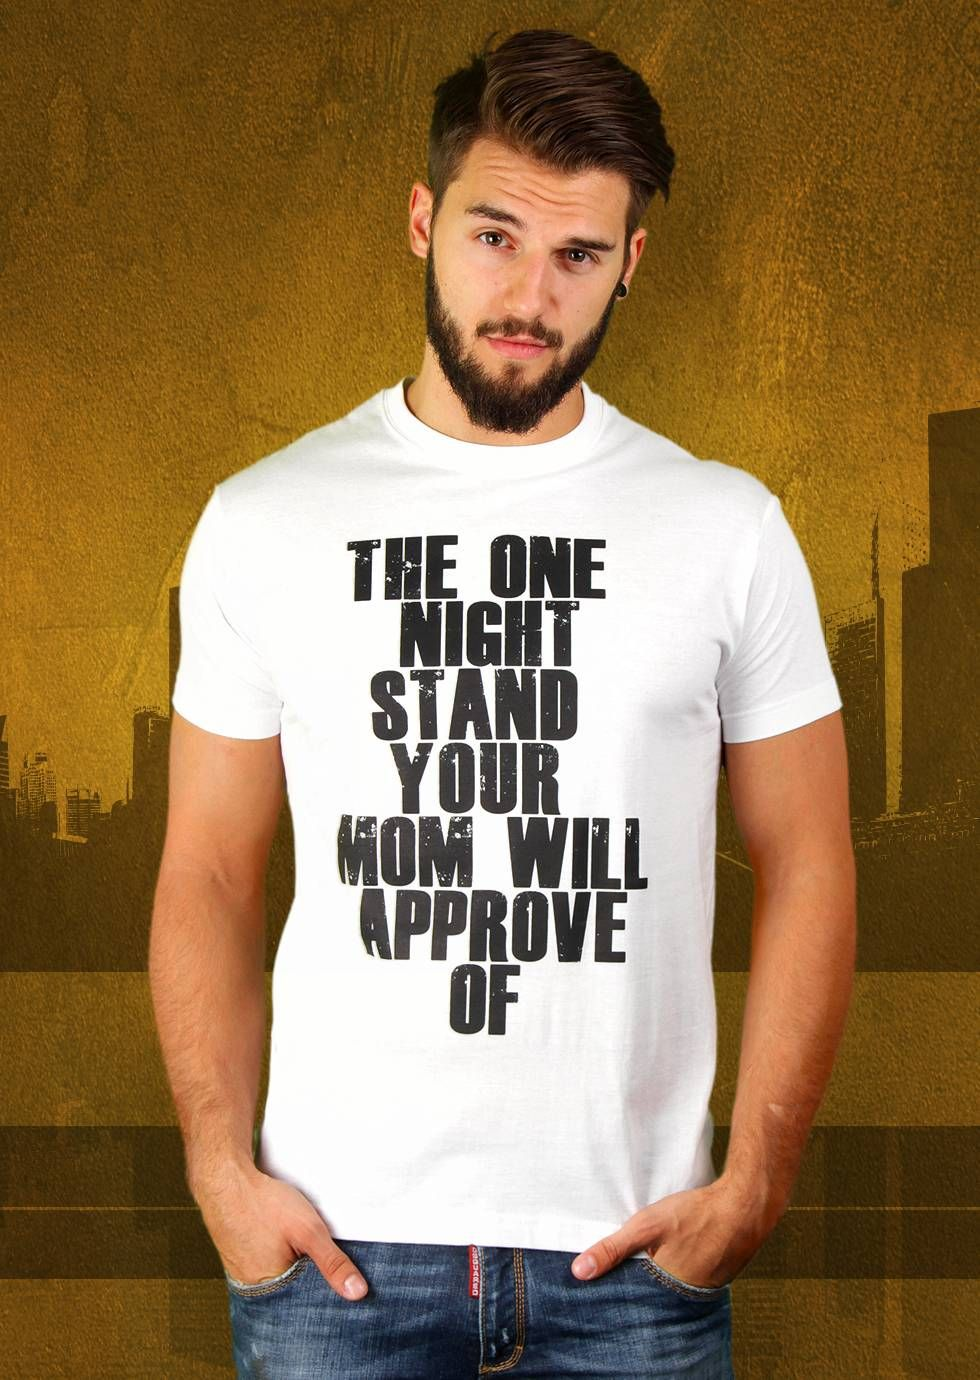 The One Night Stand Your Mom Will Approve Of T-Shirt von Kater Likoli, Mannheim, Deutschland | Design by Kater Likoli $19.95